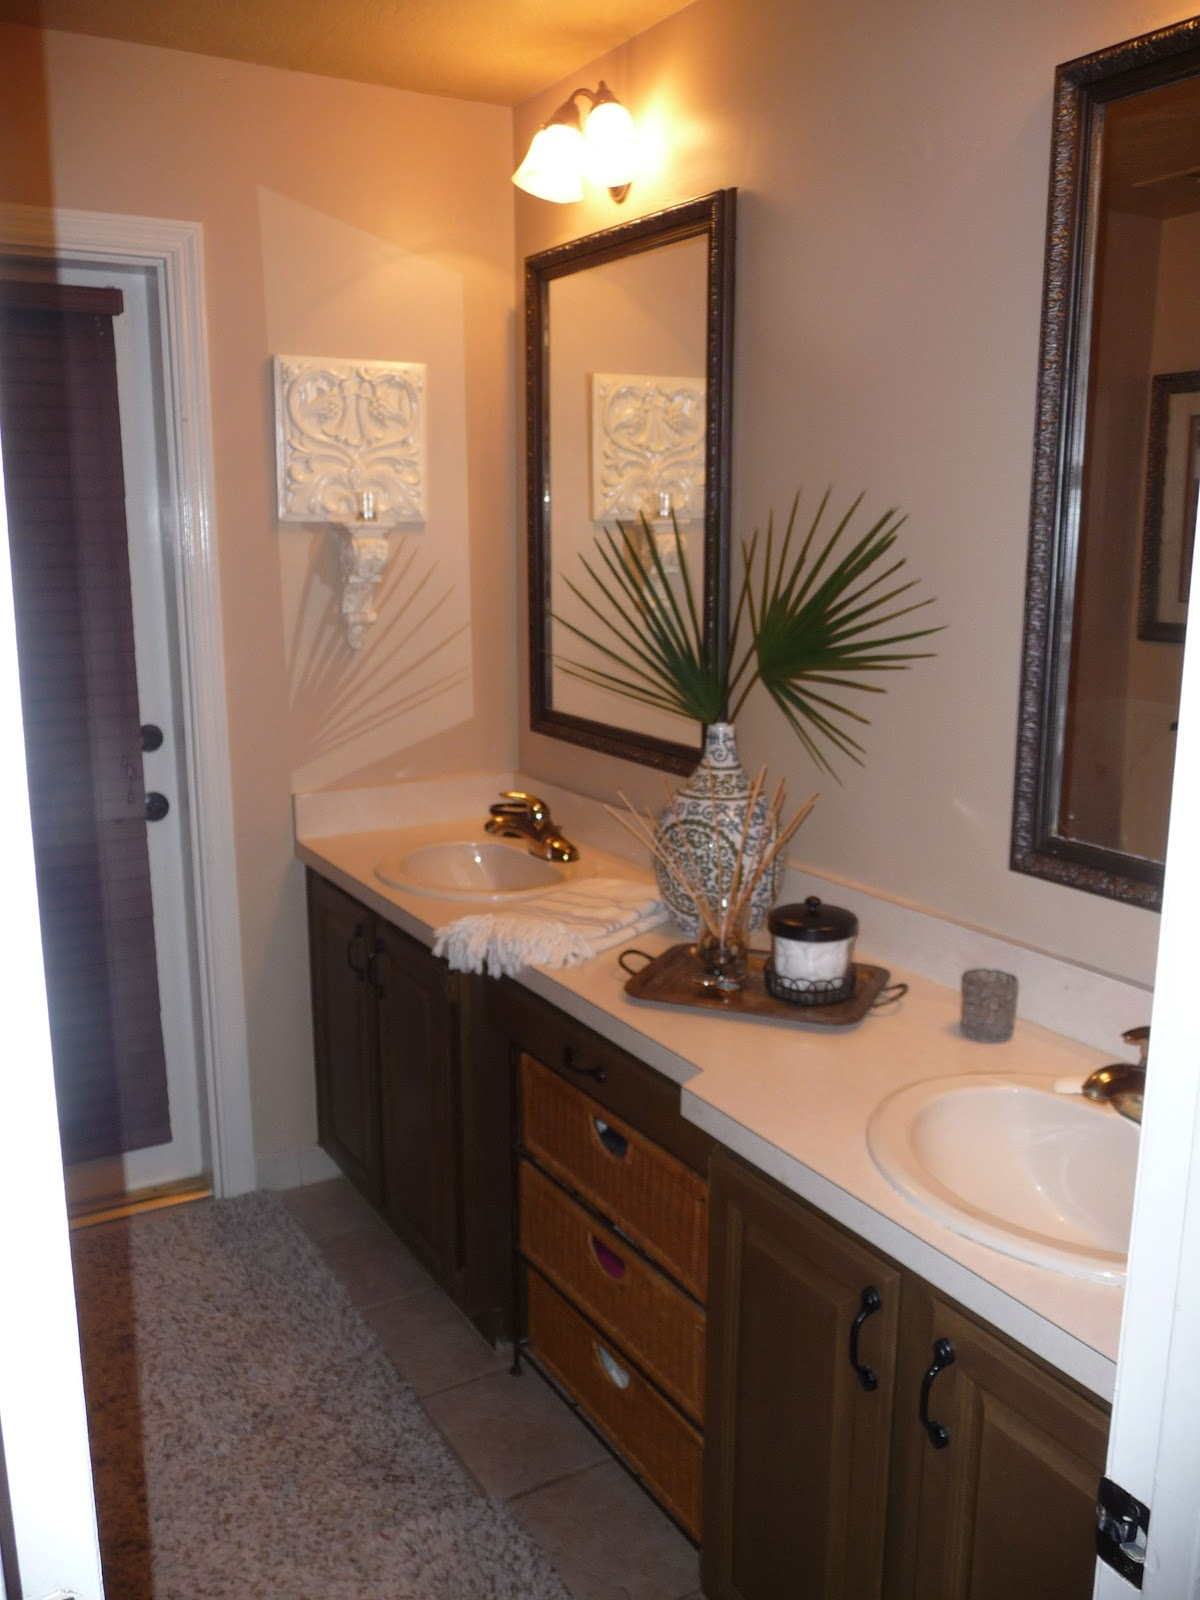 Redesign concepts blog guest bath redesign for Redesigning a bathroom